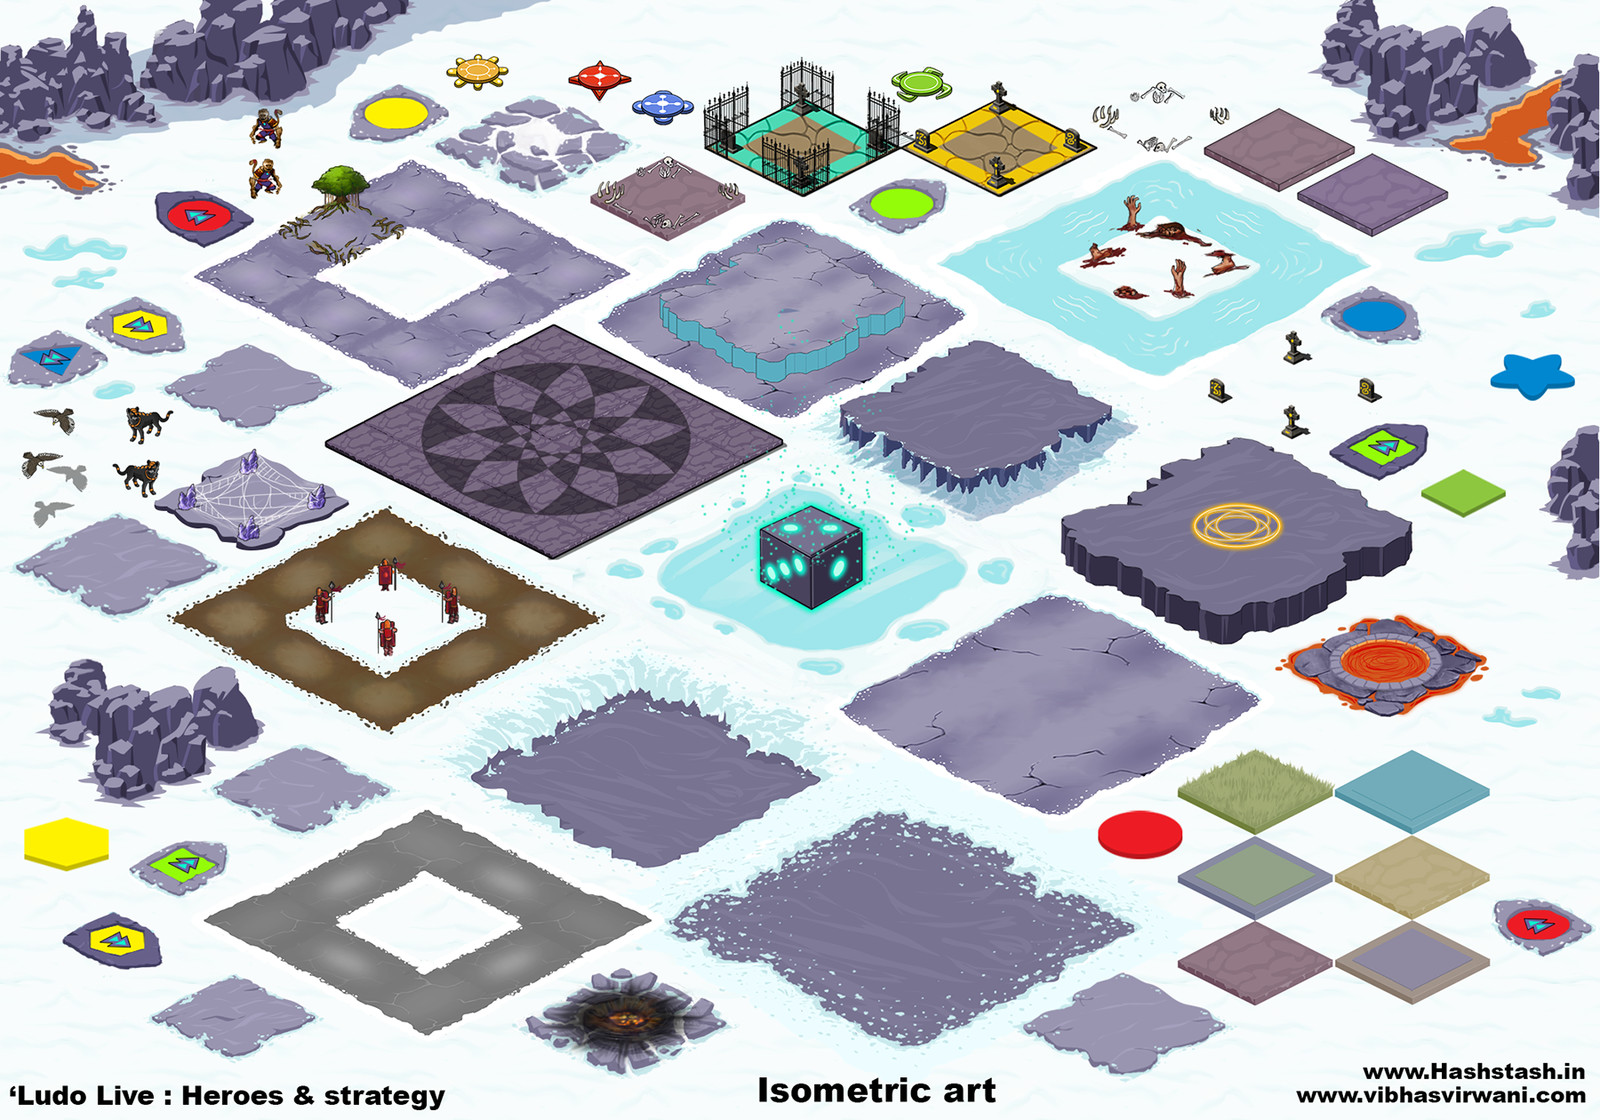 Isometric sprites used for creating the gameplay set